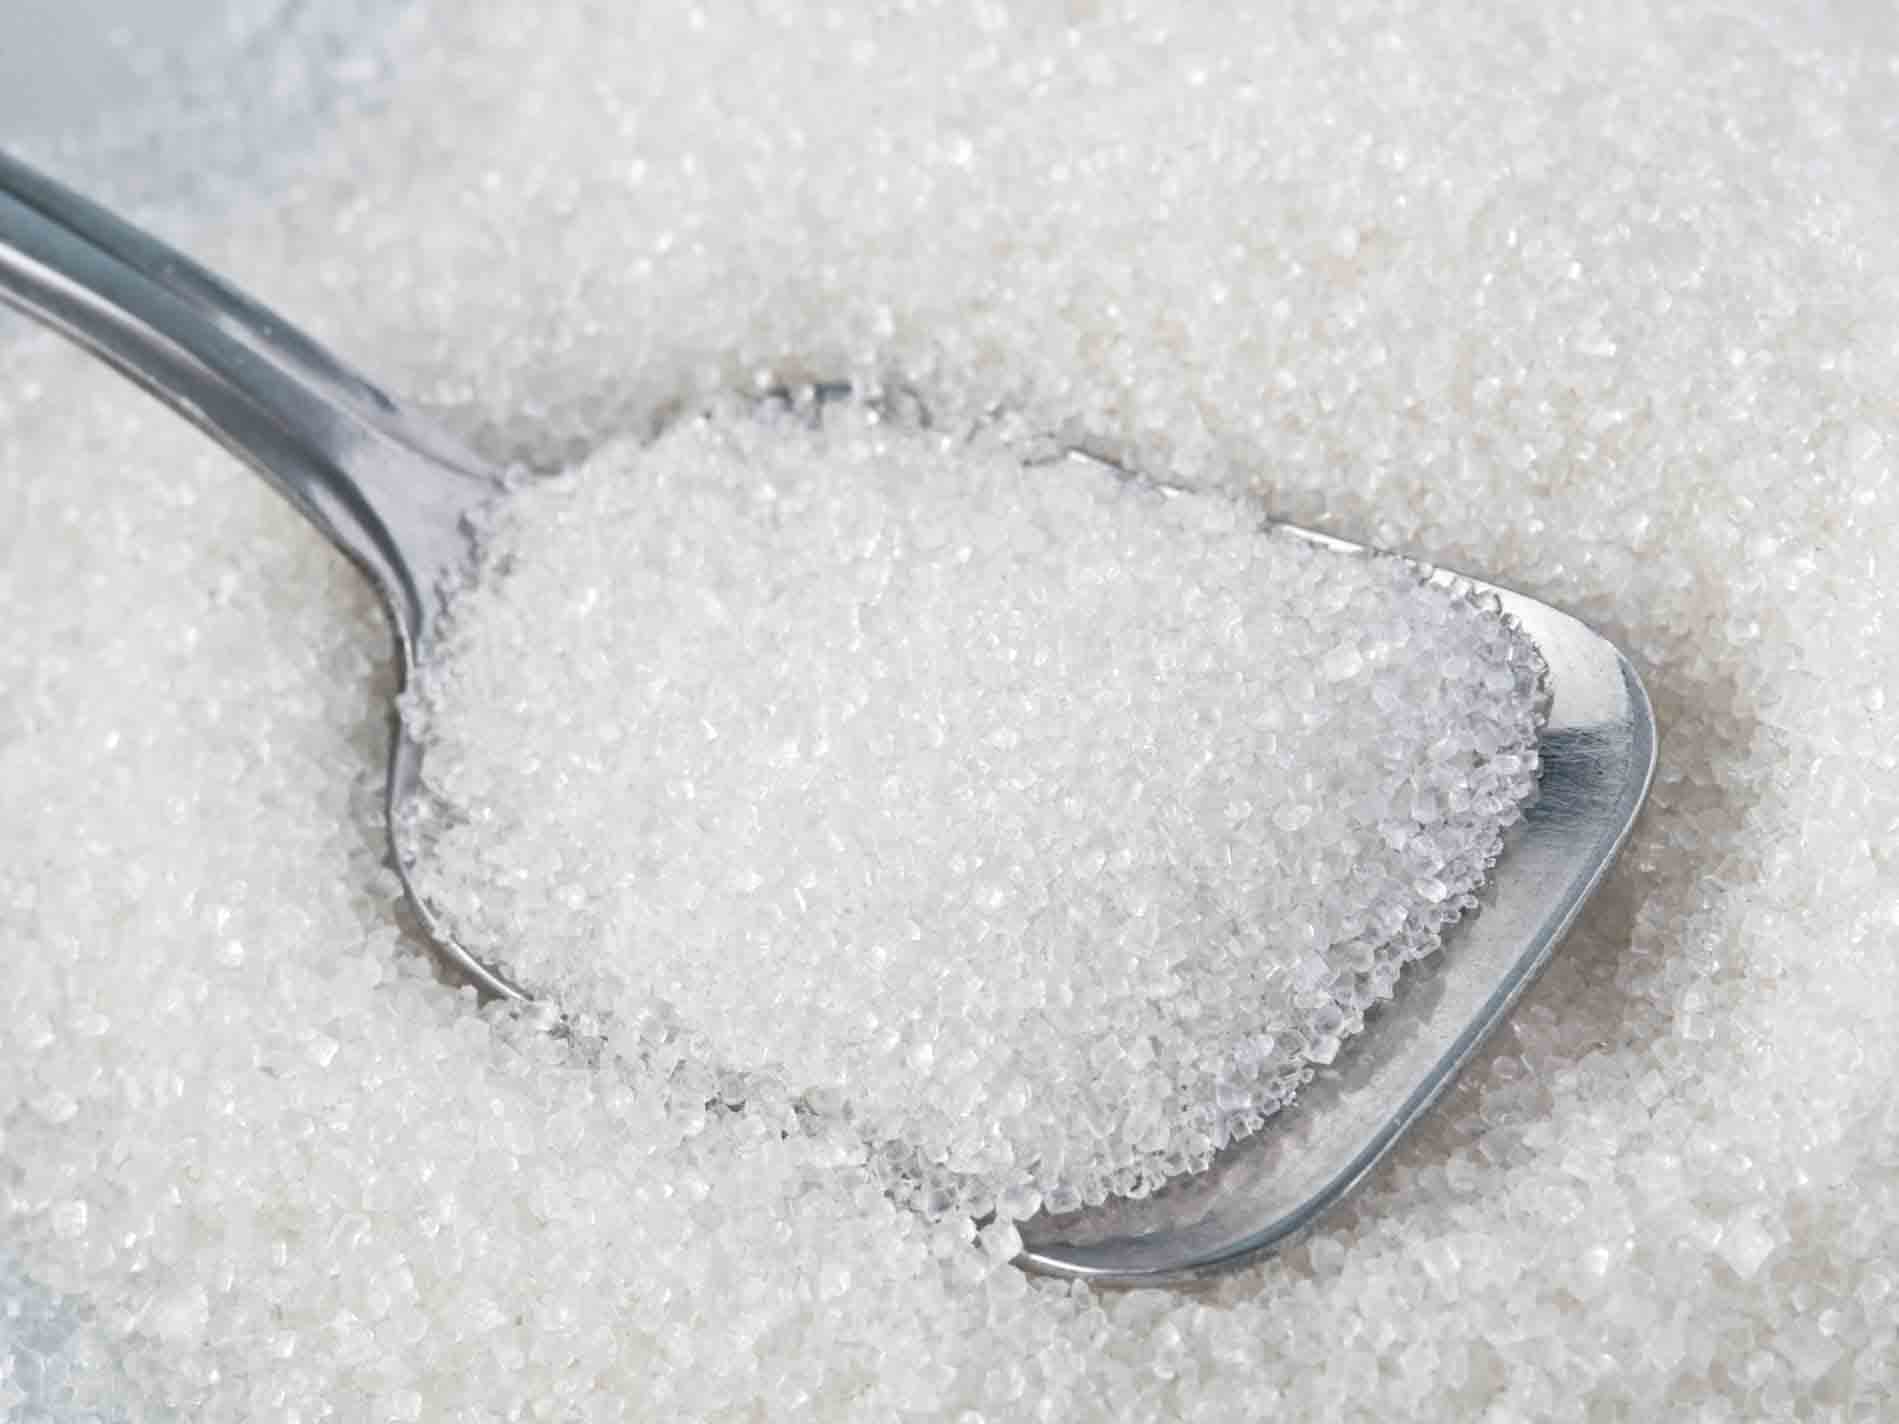 ISMA says demonetisation, price elasticity affects the sale of sugar